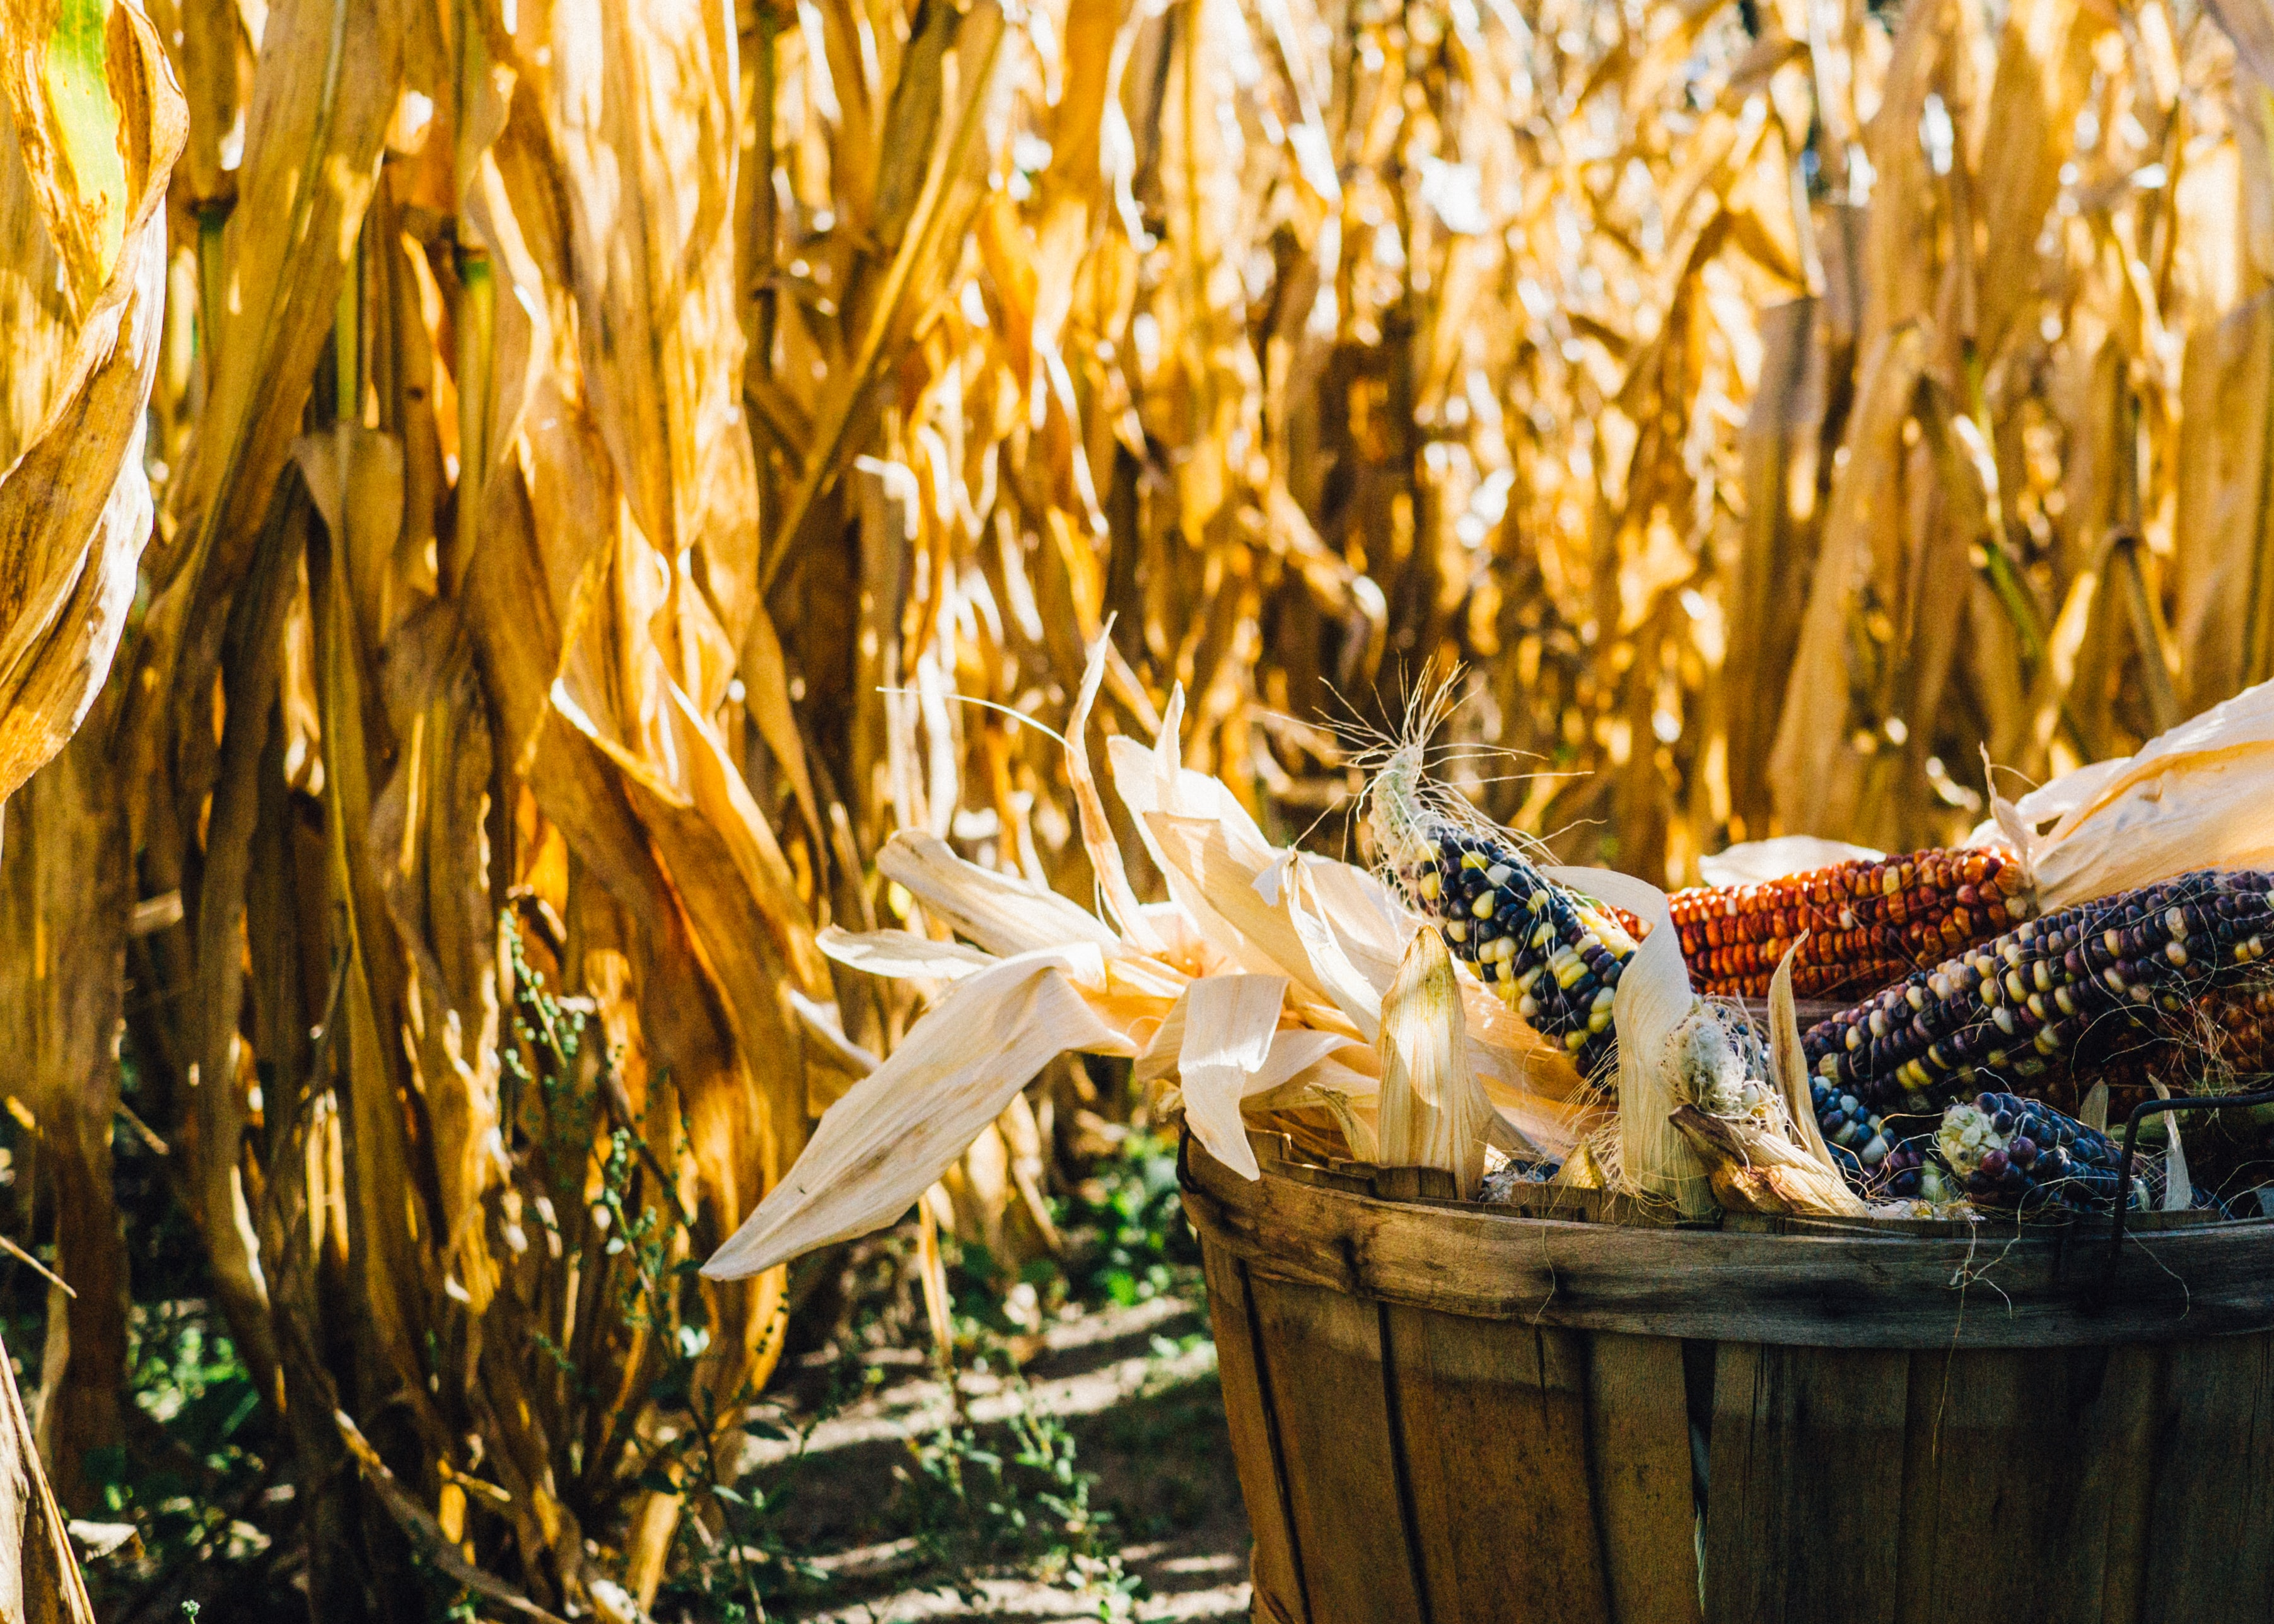 Basket of colorful corn in a cornfield with tall stalks